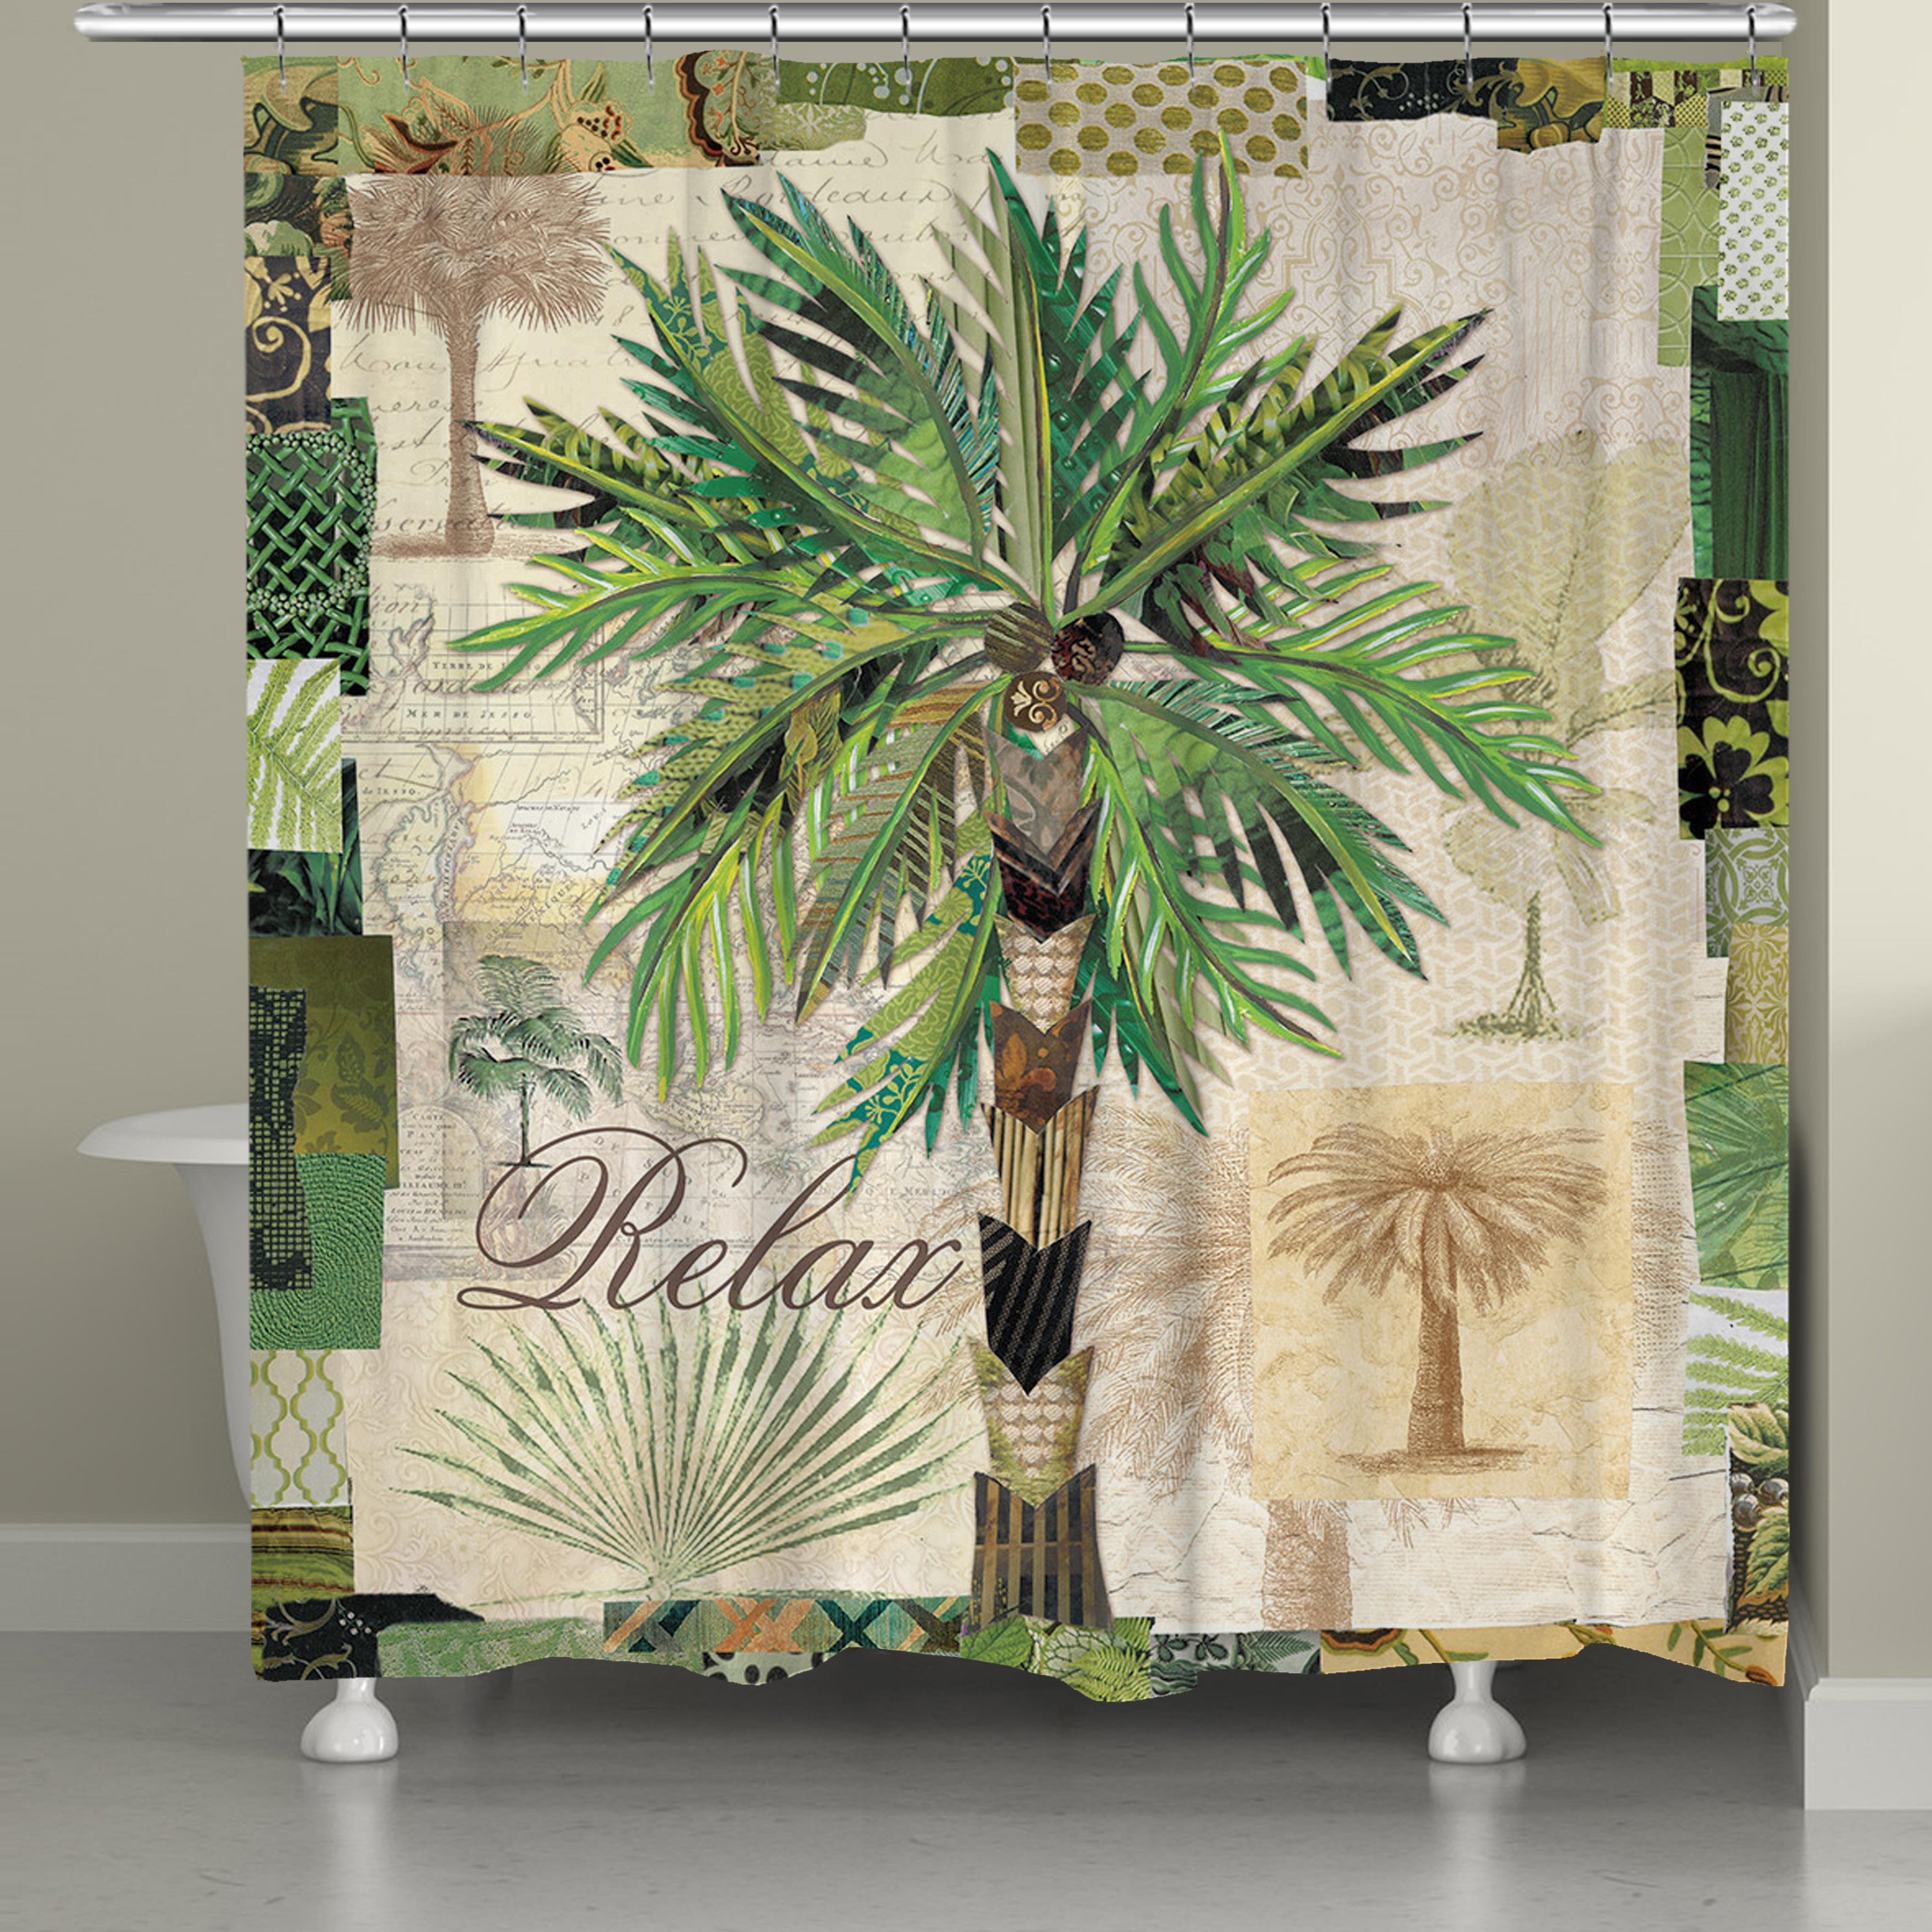 laural home palm beauty 71 x 72 inch shower curtain